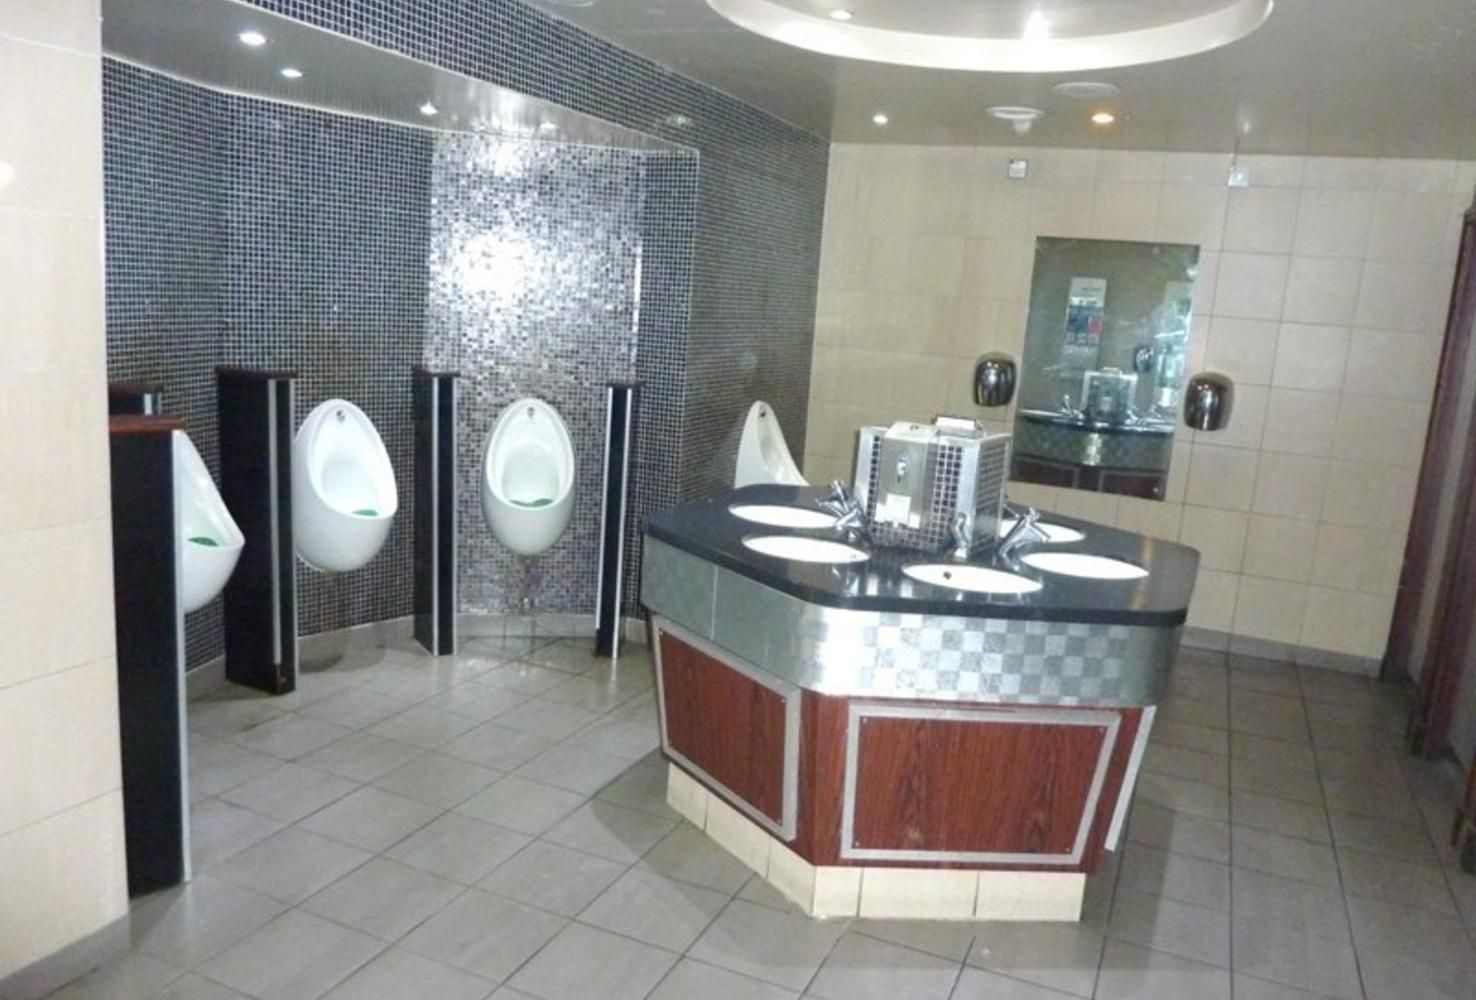 Aberdeen pub wins Loo of the Year